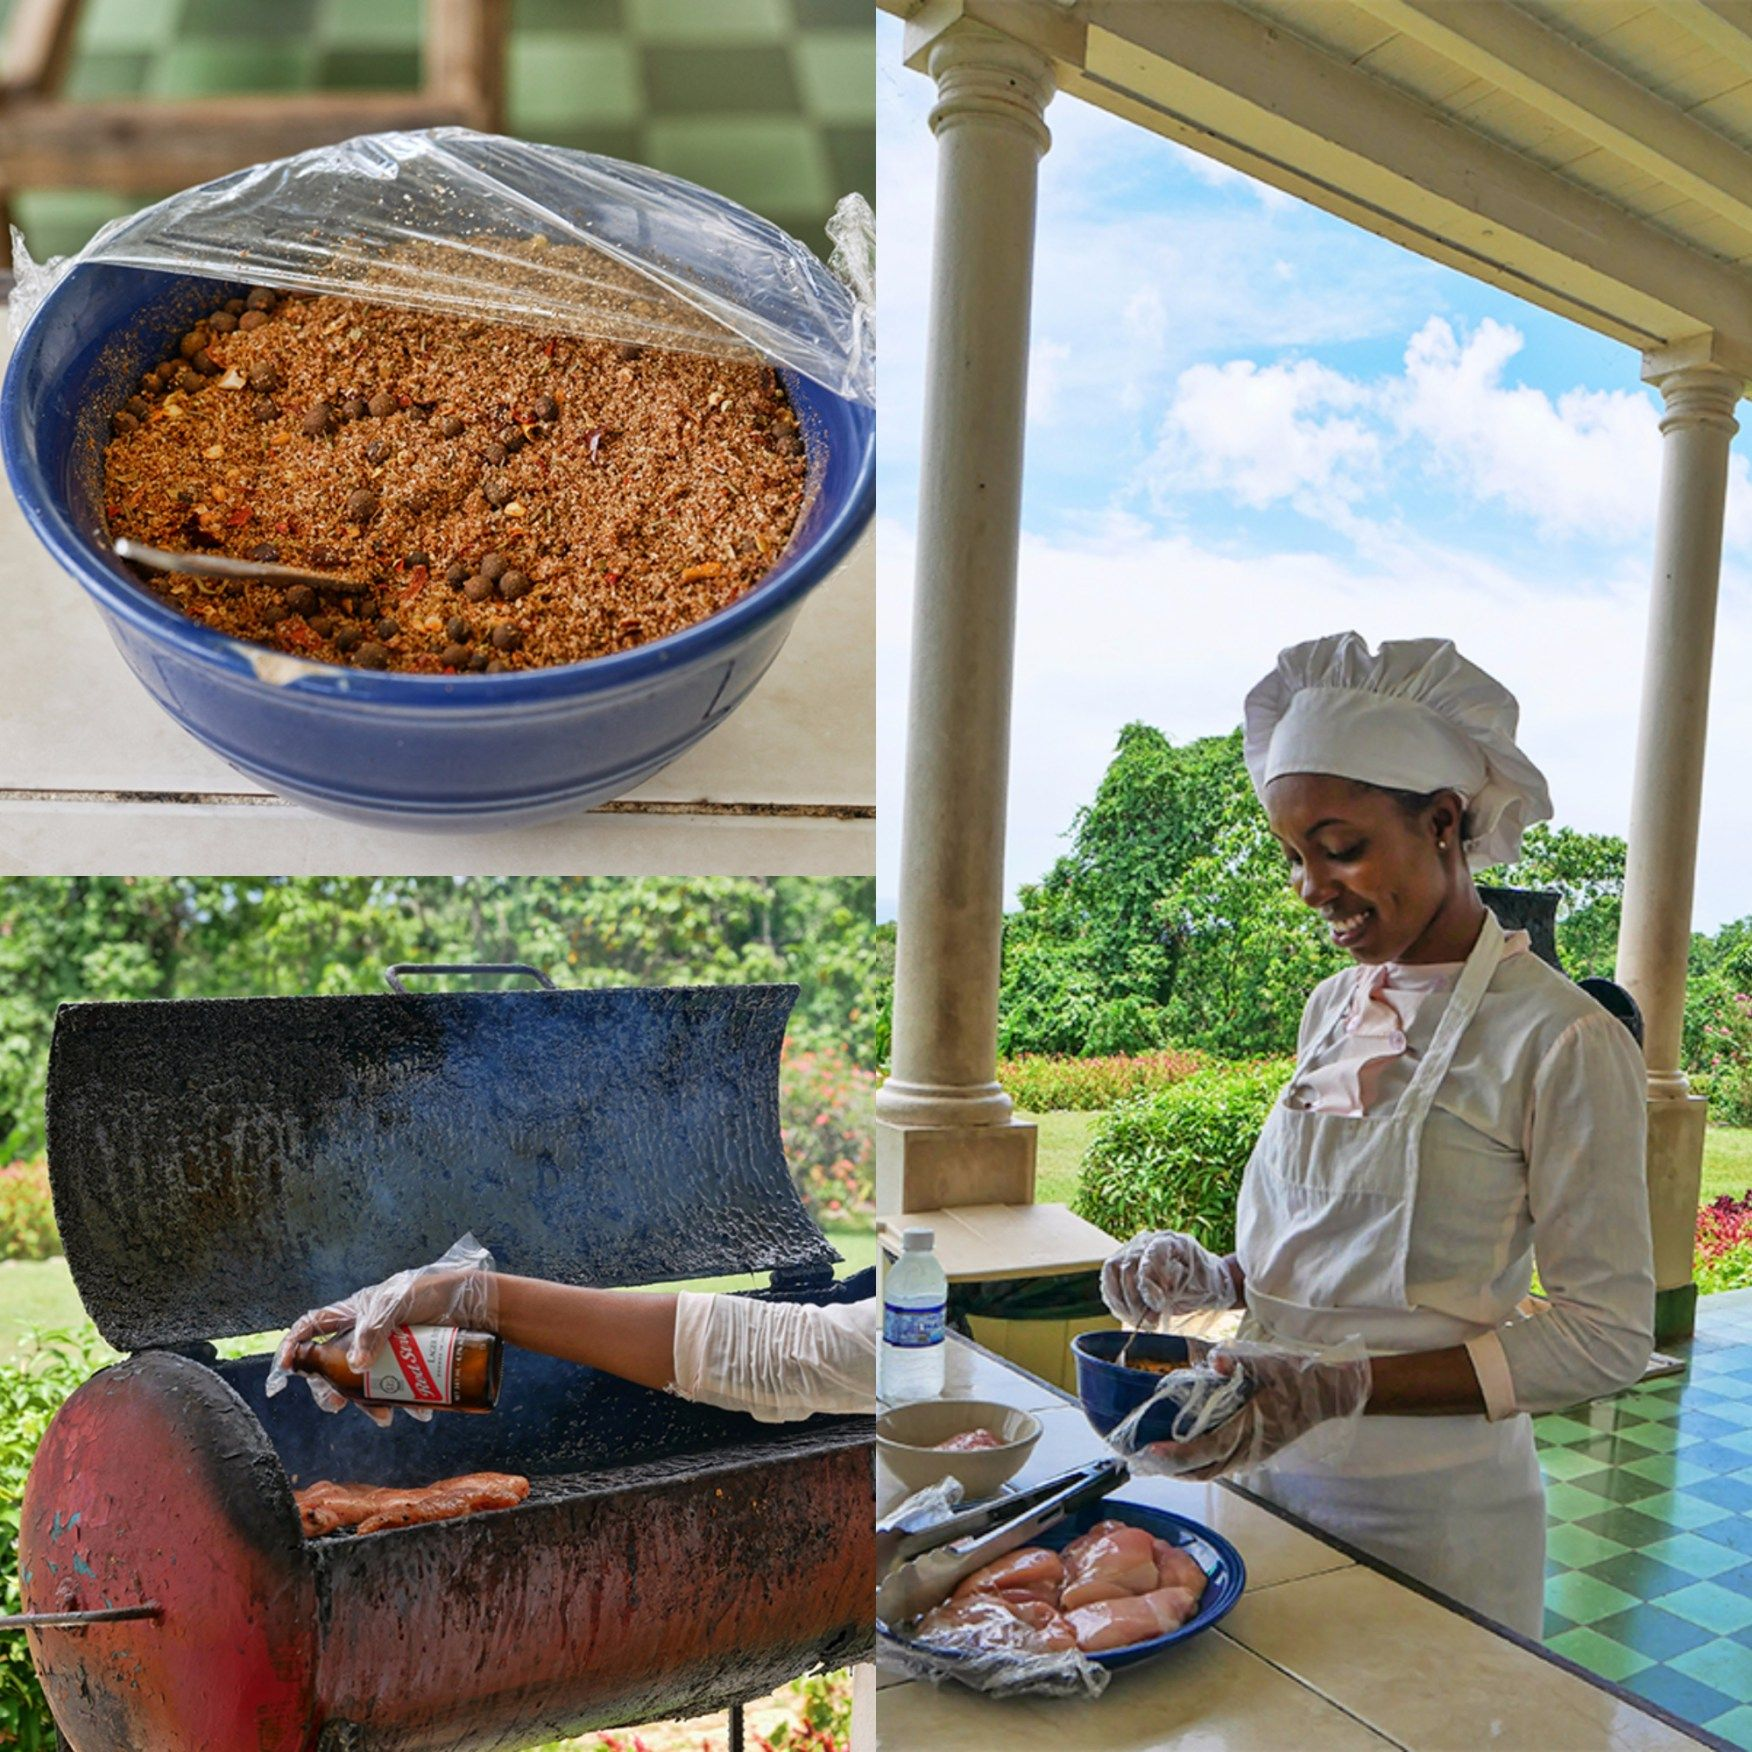 Of The Best Jamaican Food Dishes You Need To Try Restaurants - 10 caribbean foods you need to try